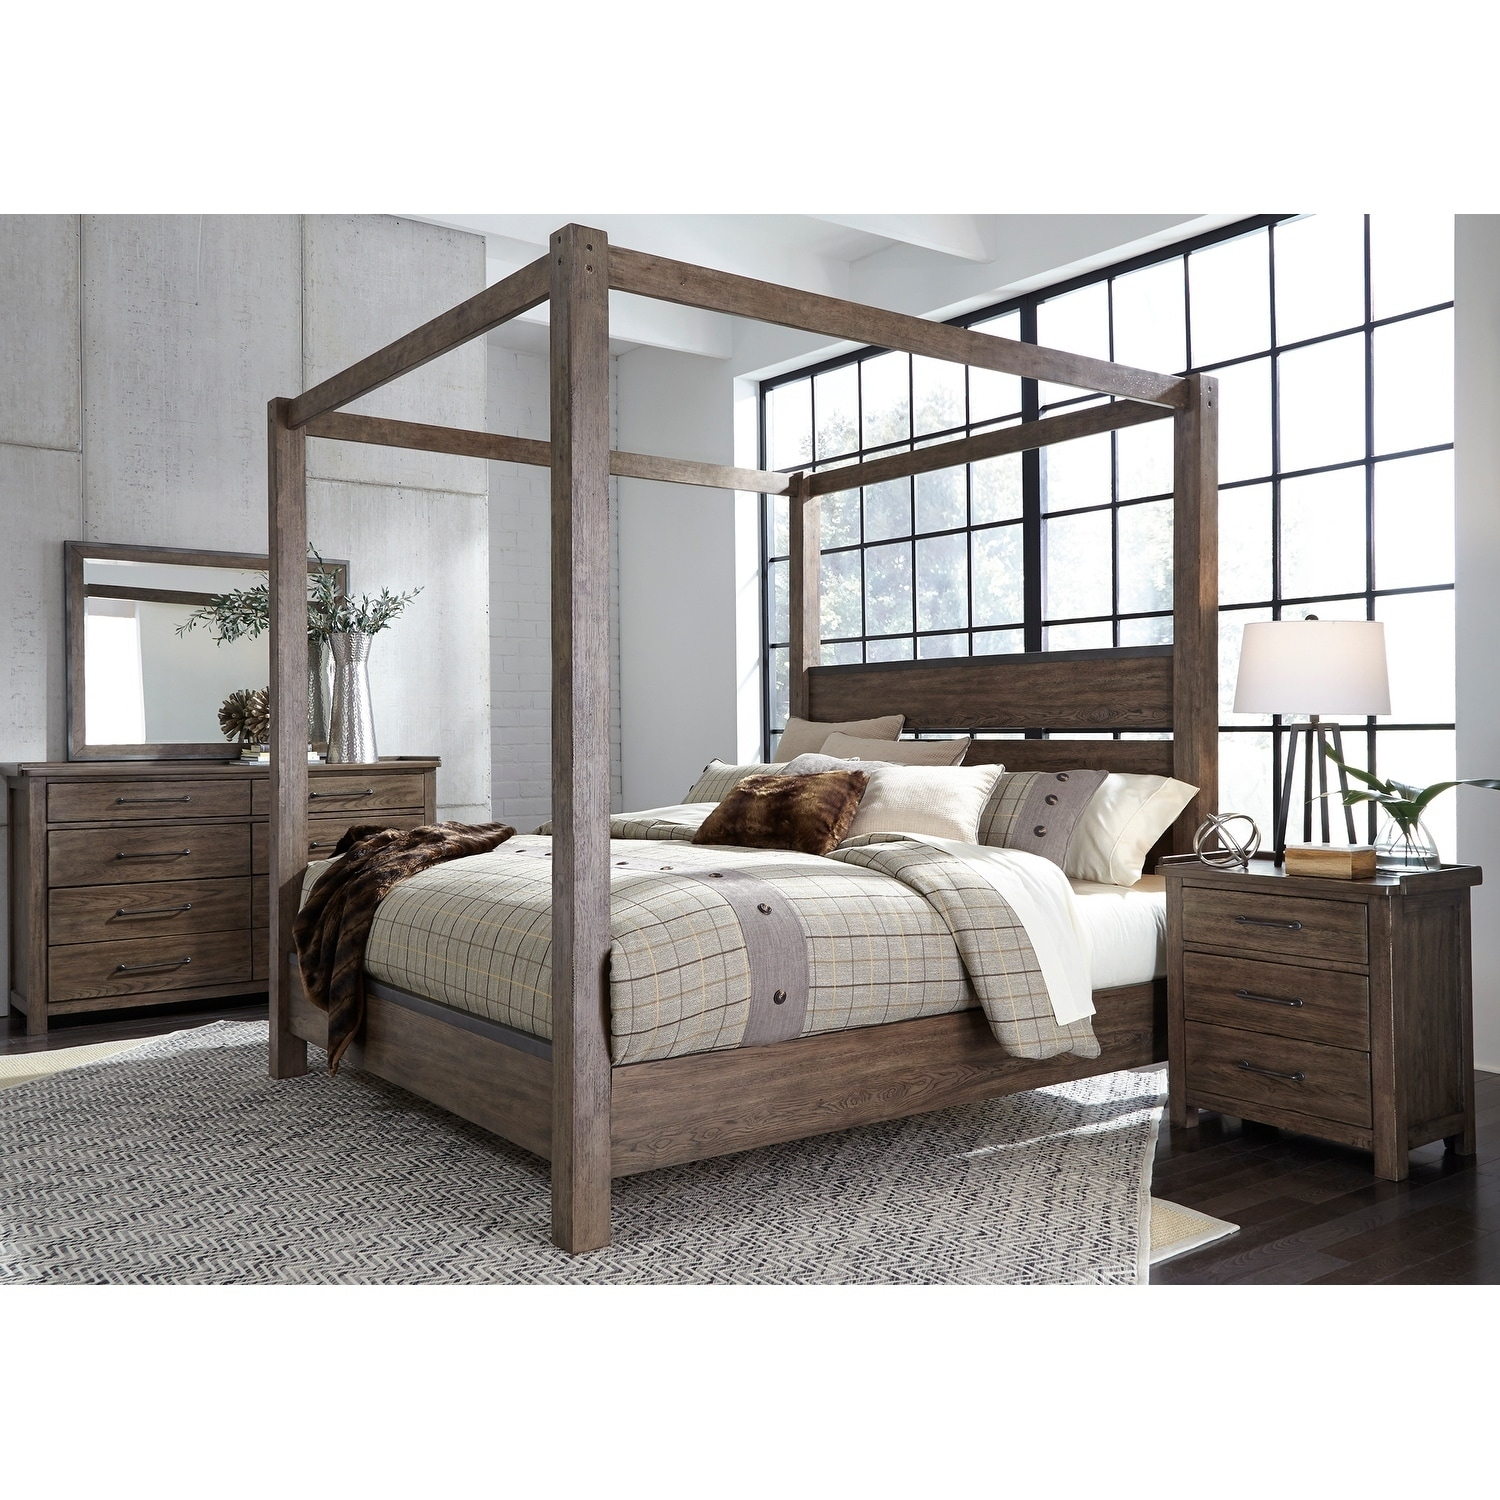 bb89a68e2bf1 Shop Sonoma Road Weather Beaten Bark King Canopy Bed - On Sale ...